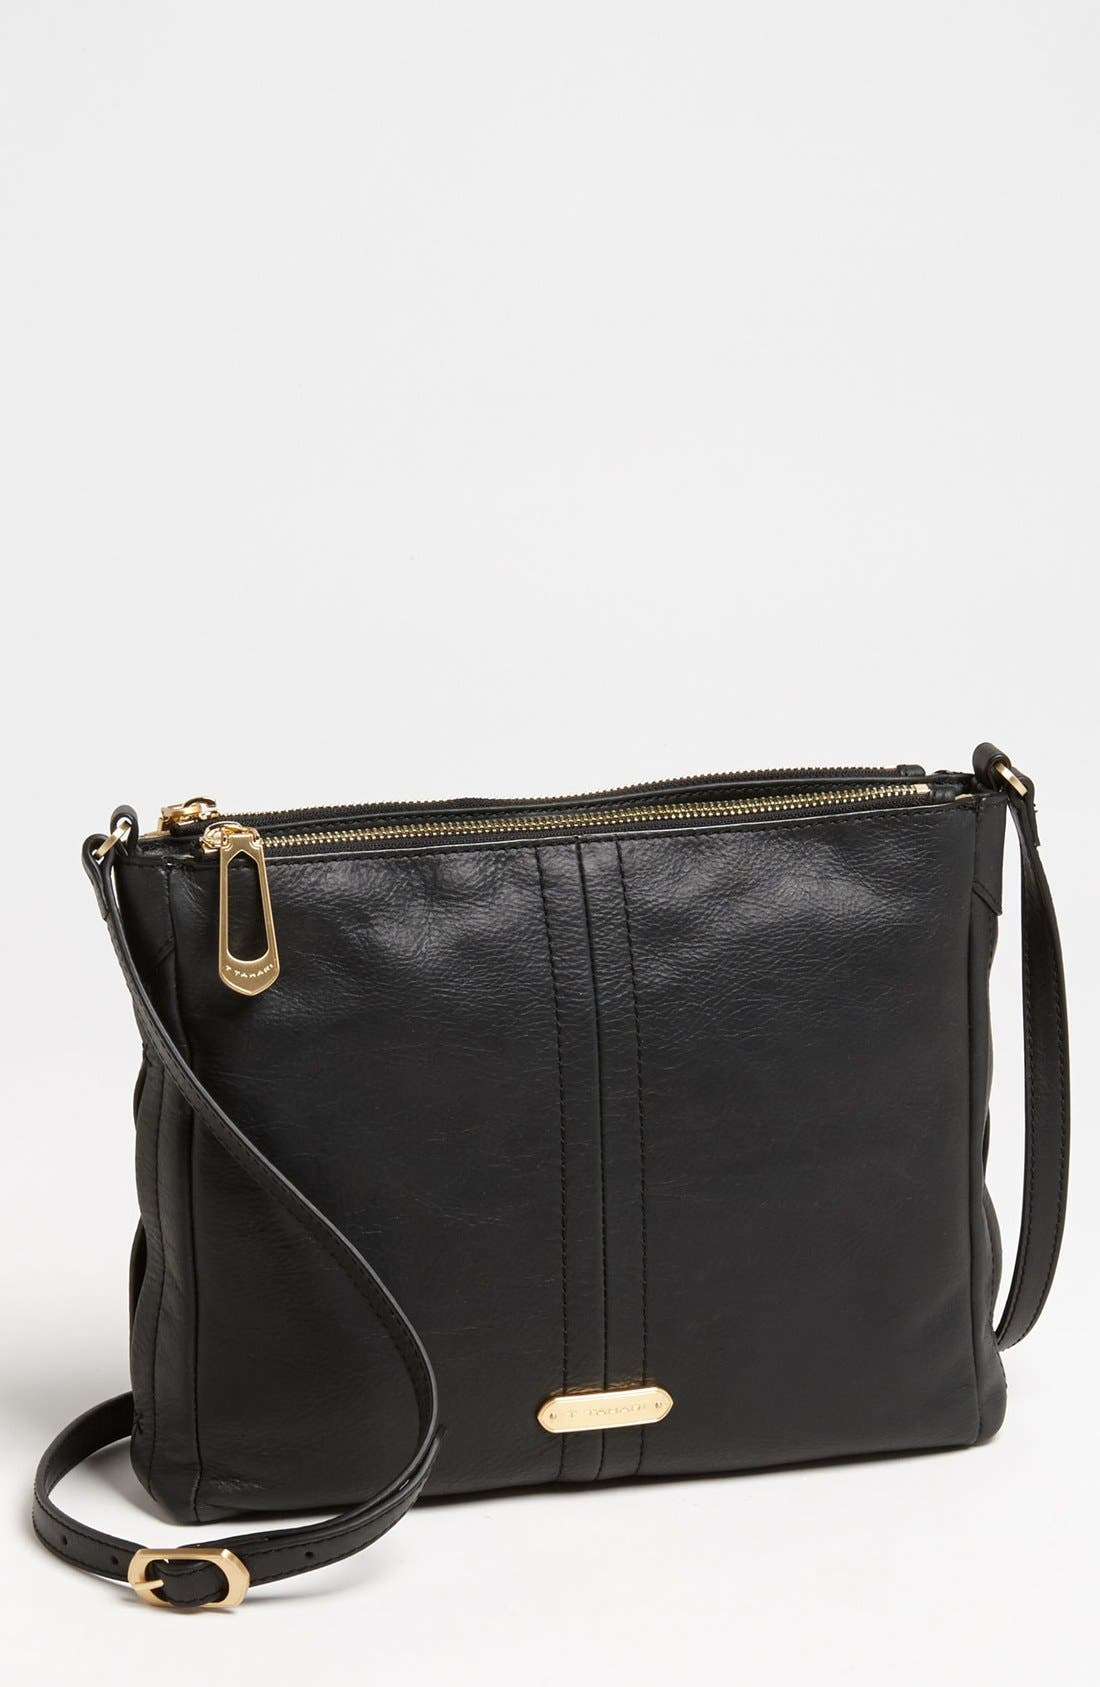 Alternate Image 1 Selected - T Tahari Pleated Double Zip Leather Crossbody Bag